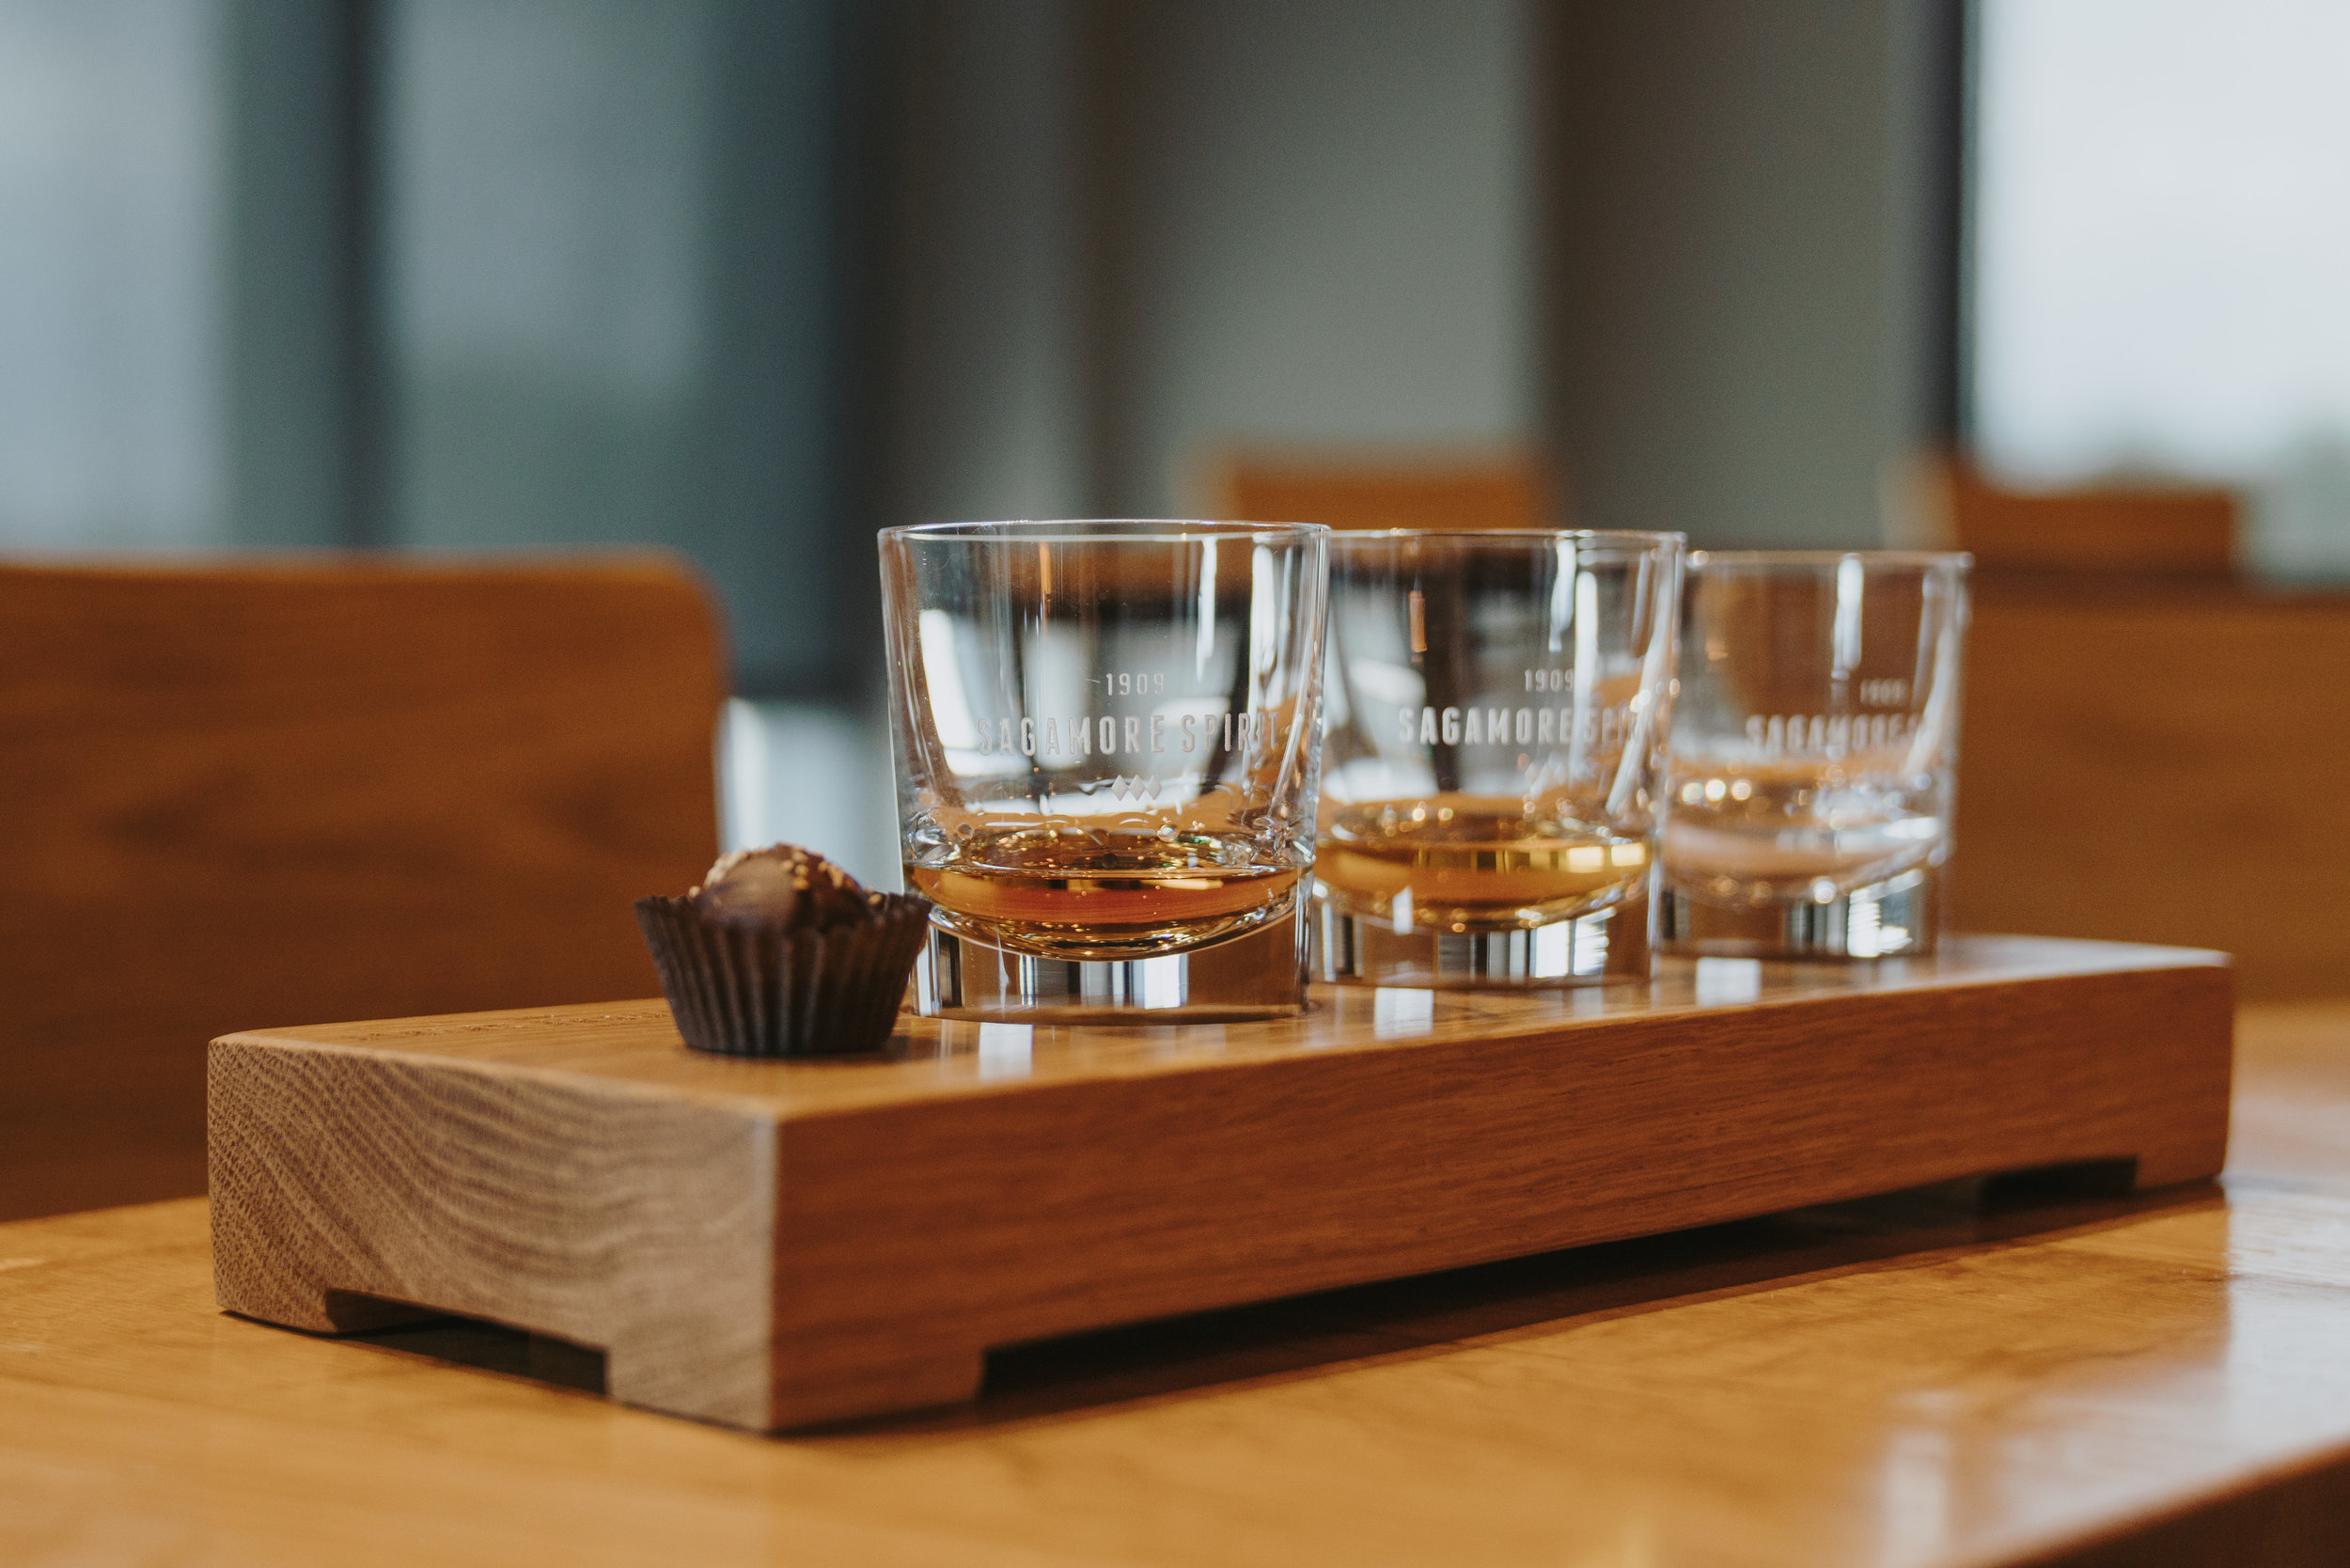 photo by Michael Woolsey for Sagamore Spirit